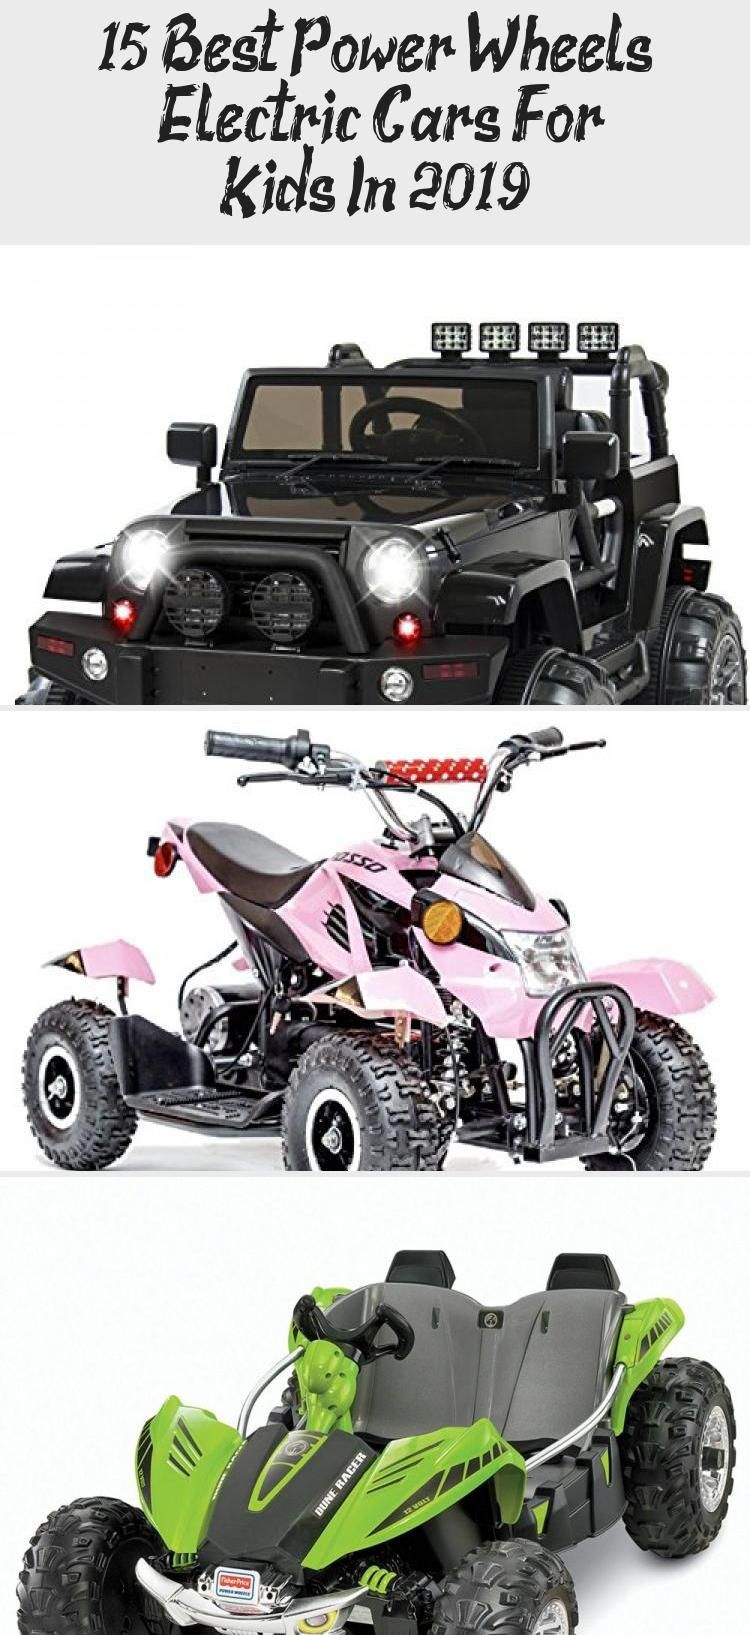 15 Best Power Wheels & Electric Cars For Kids In 2019